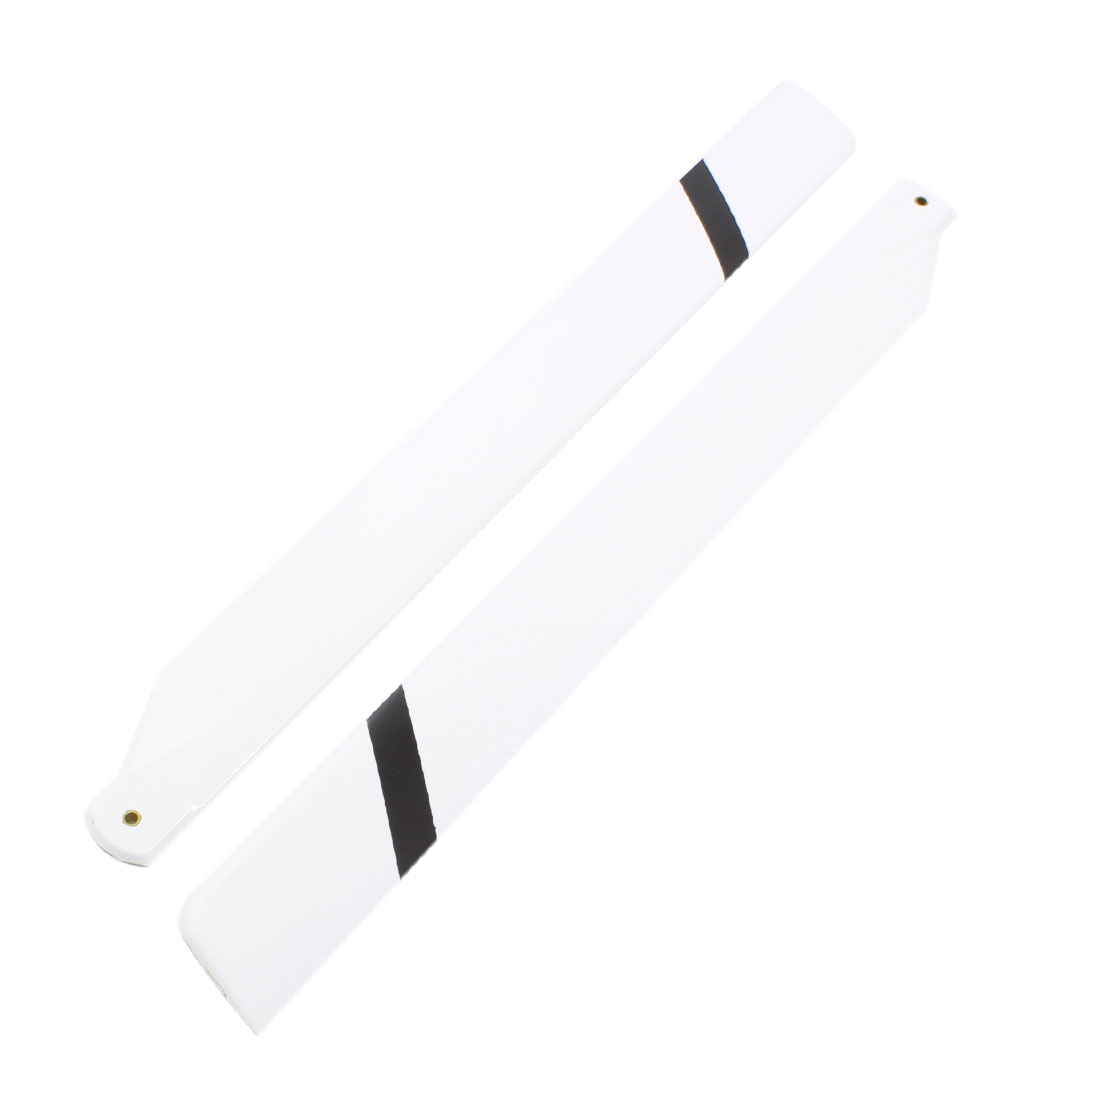 2pcs White 325mm Glass Fiber Main Rotor Vanes for Trex 450 Series RC Helicopter